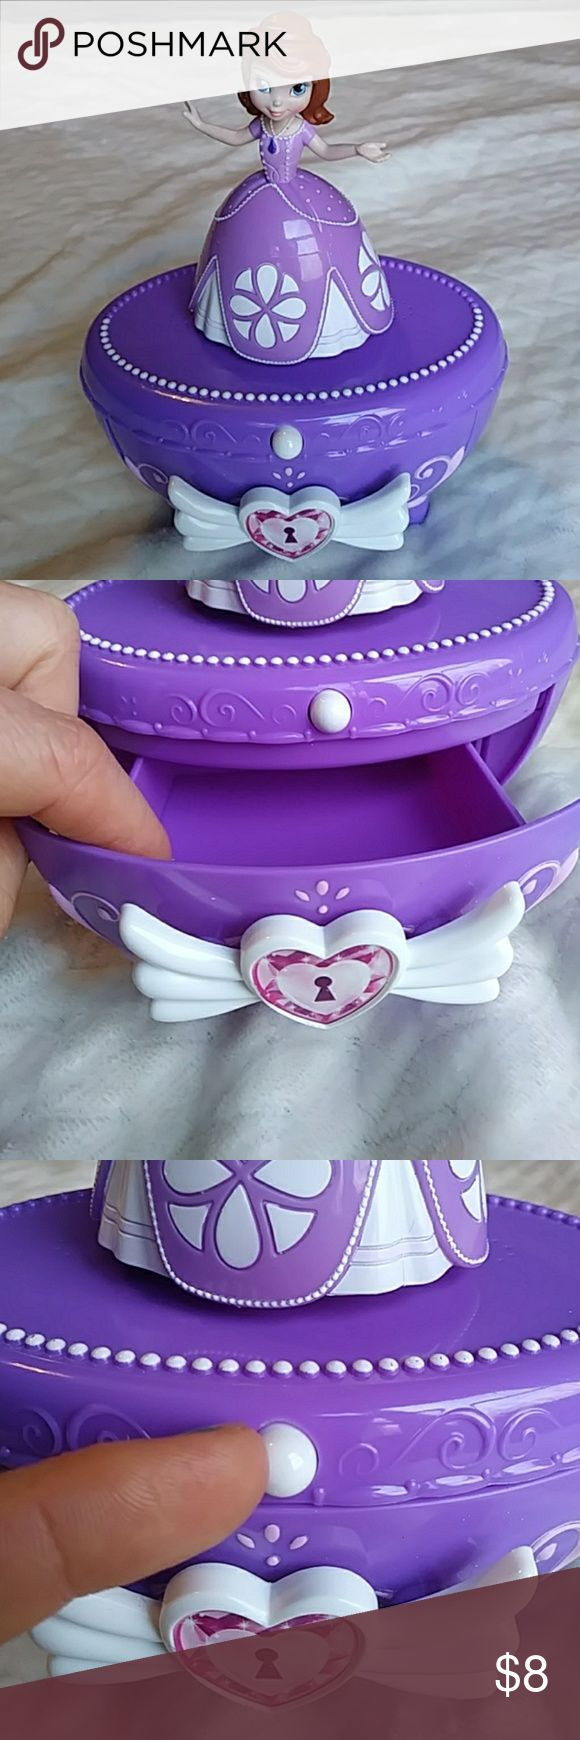 Sofia the First Jewelry Box Batteries included and it works! Push the white button and Sophia sings a song and the doll ontop spins. Drawer opens to place jewelry or other little treasures in. Also and on/off button underneath.  20% off bundles Smoke free home Sofia the First Accessories Jewelry